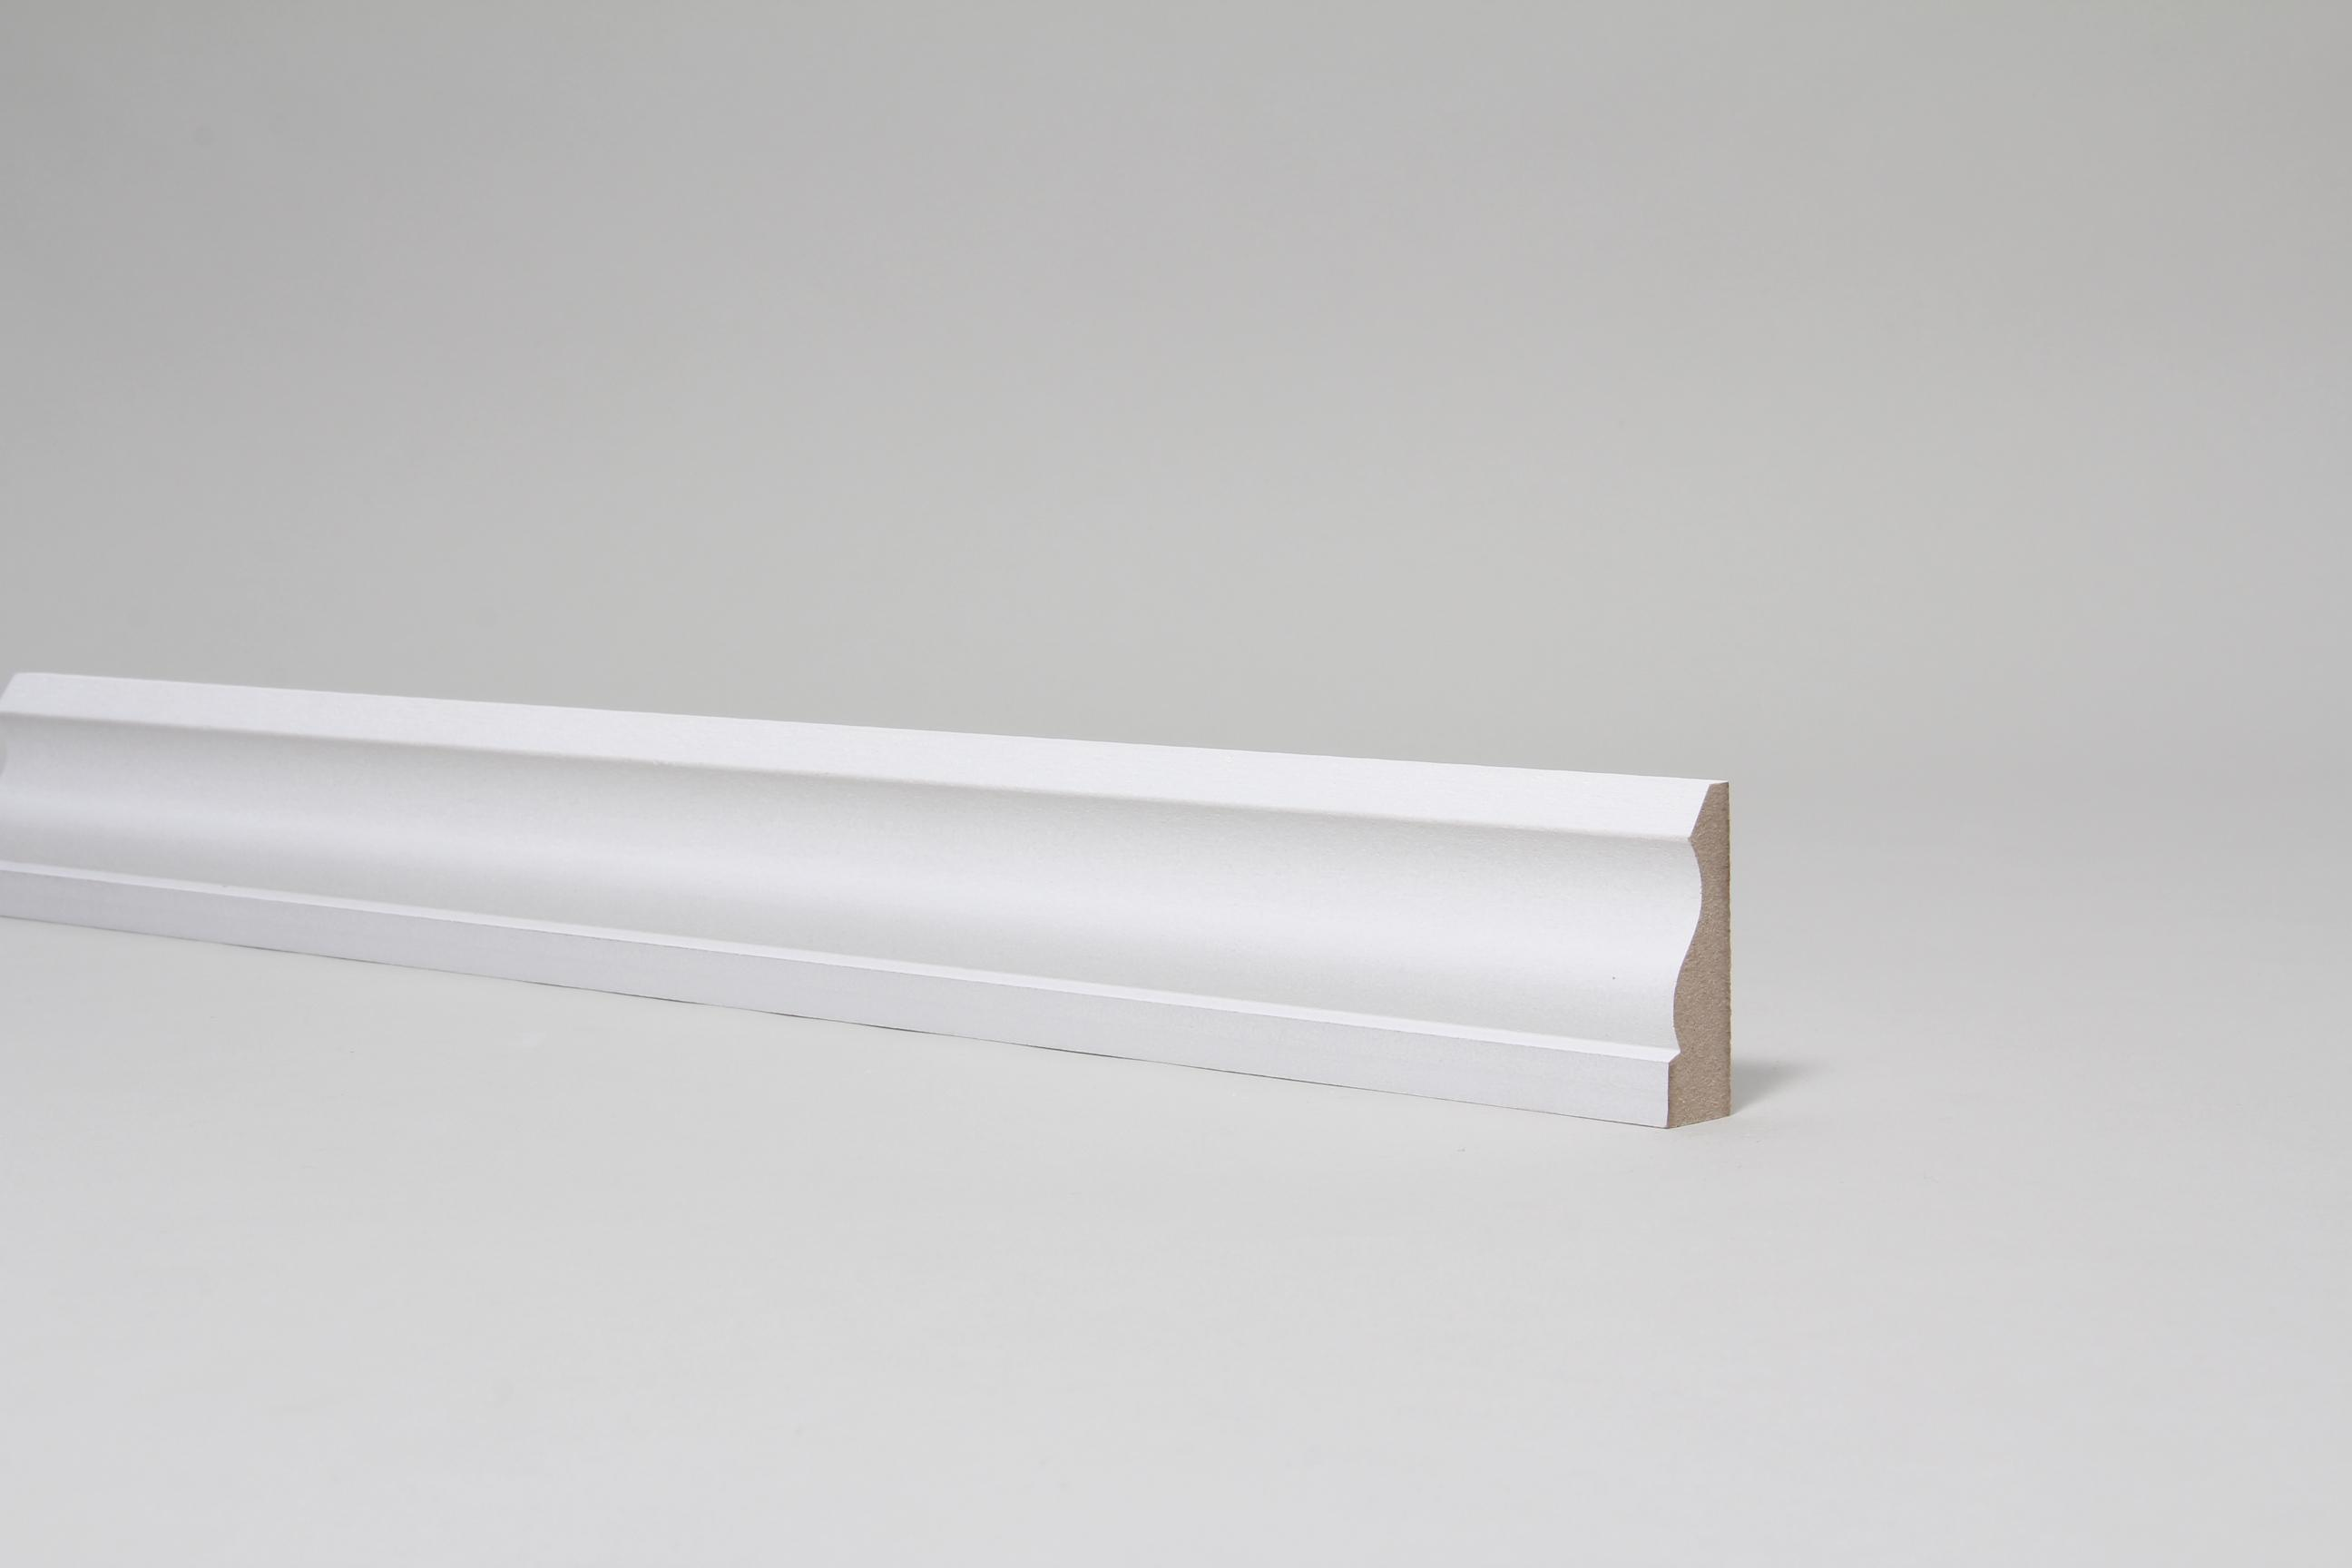 Ogee 18mm x 50mm x 4.4 Mtr Primed